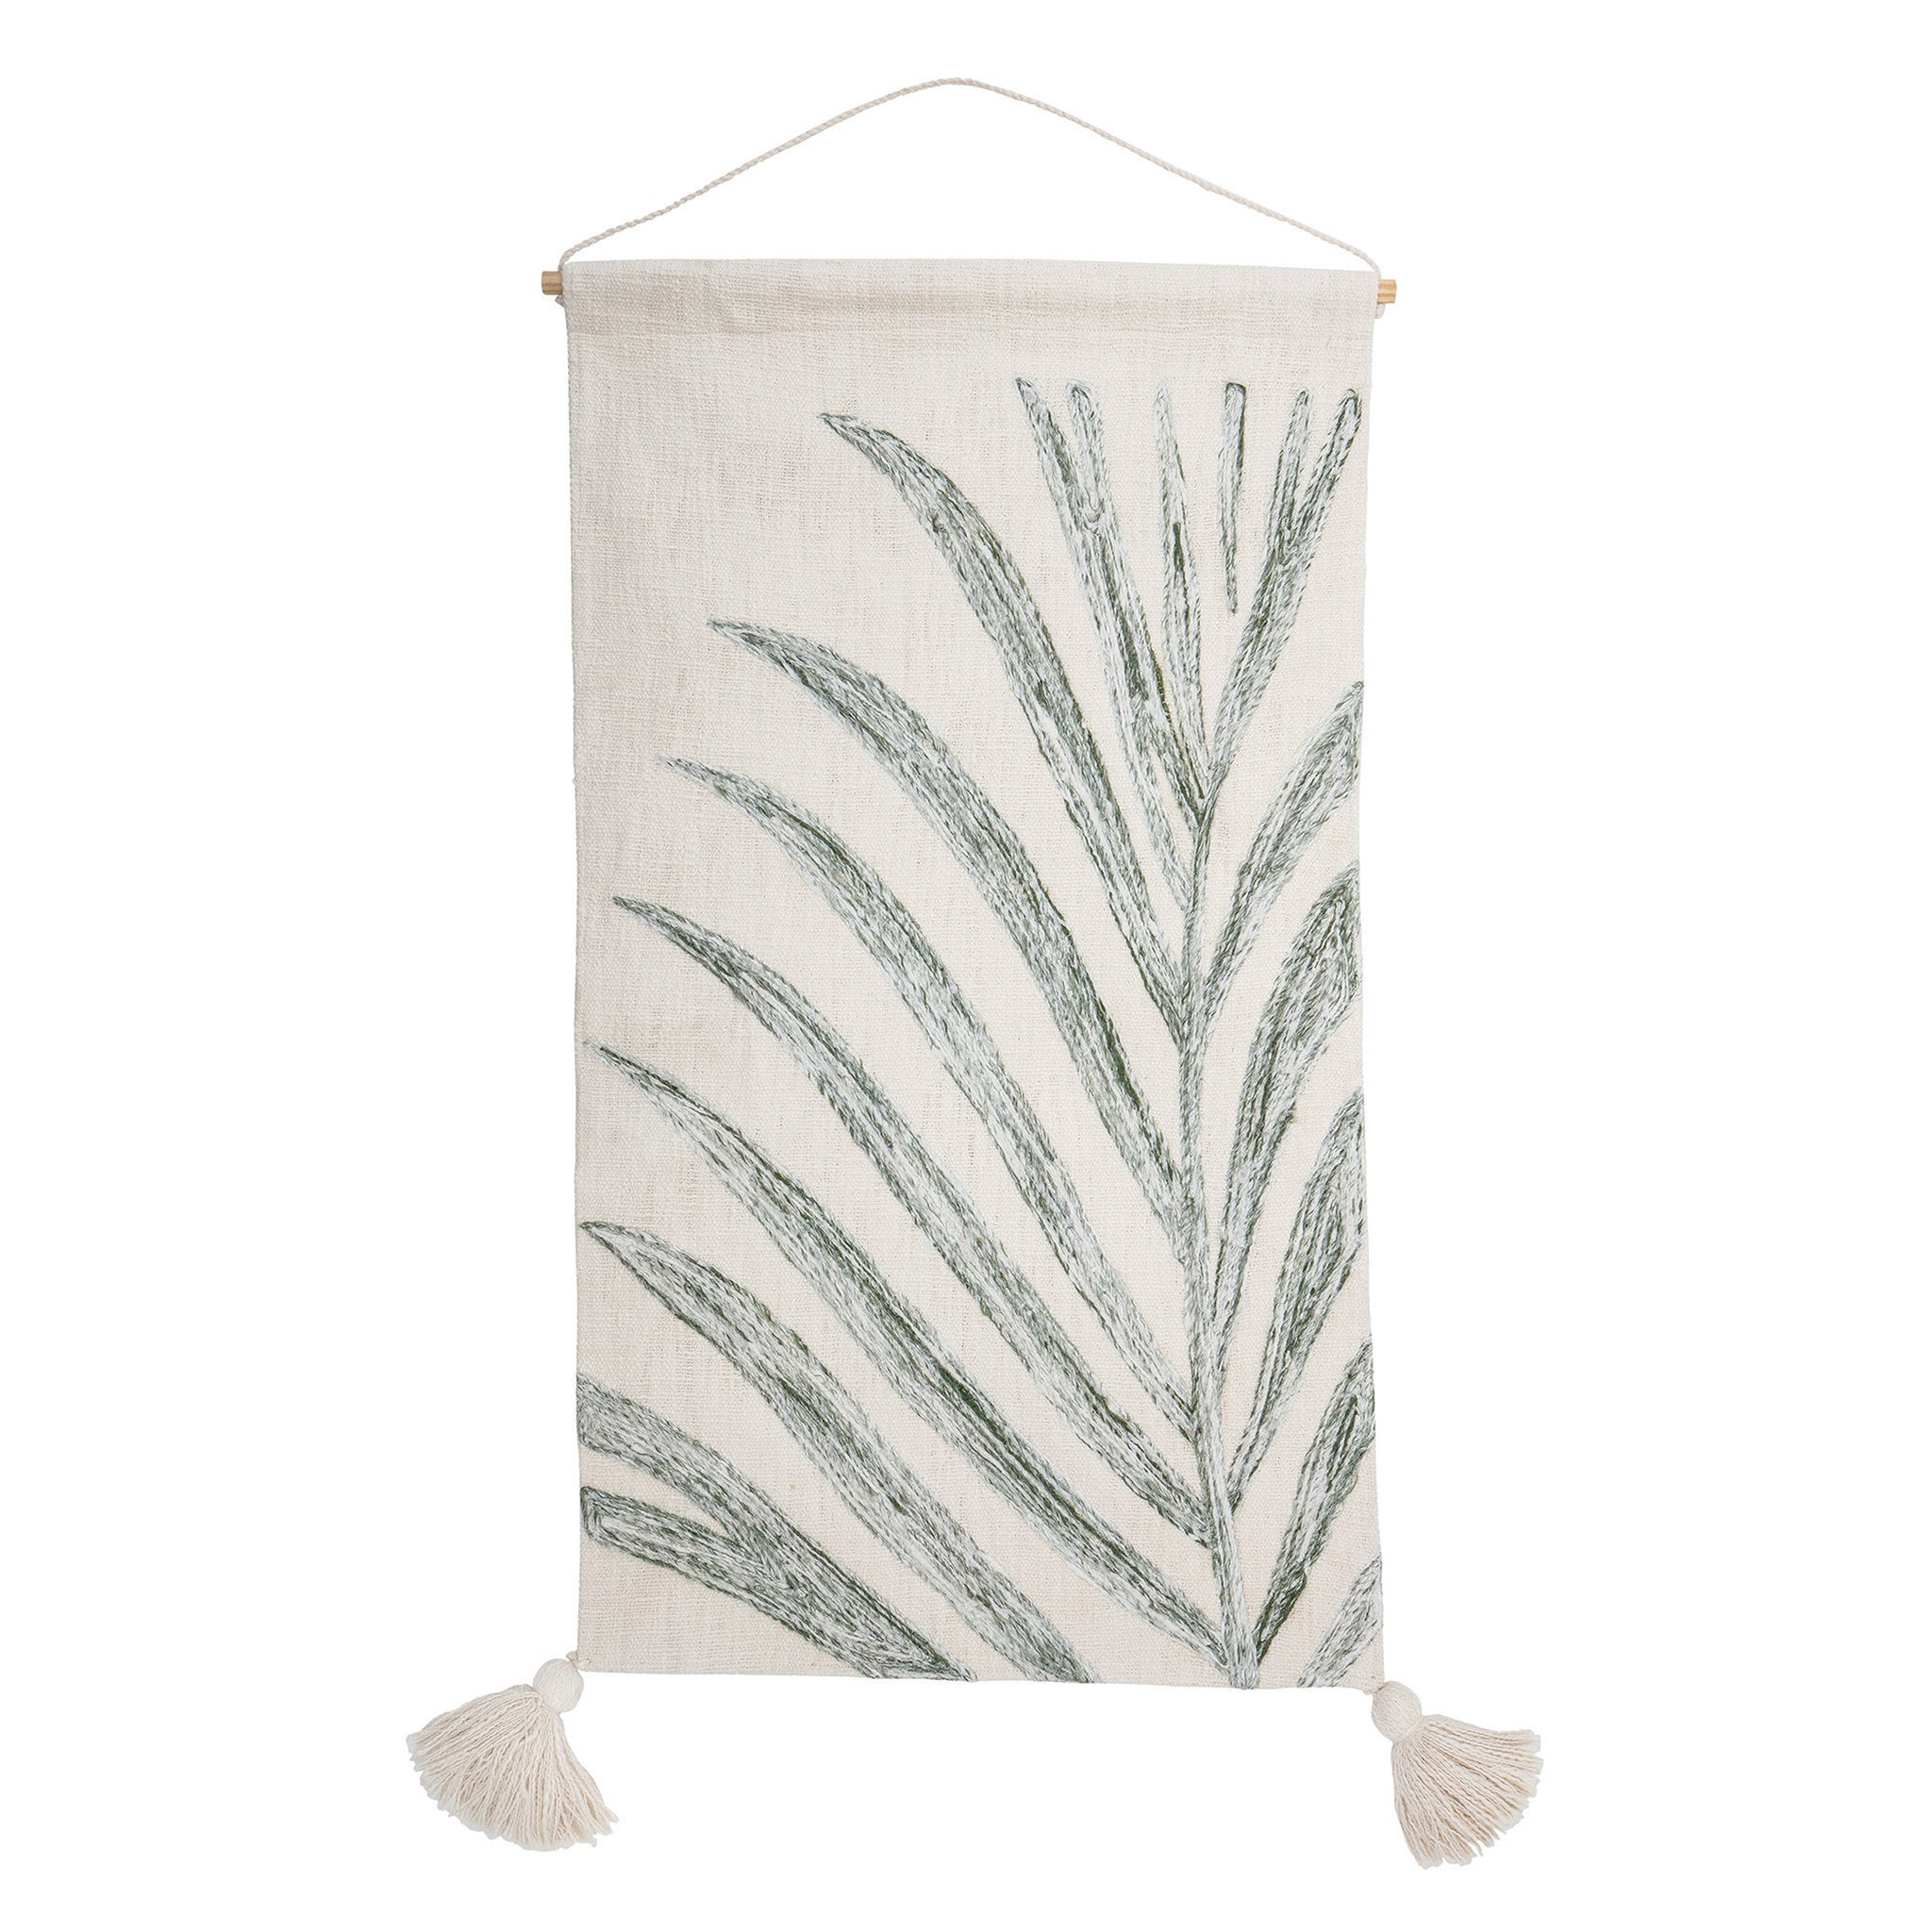 Off-White Woven Wall Hanging with Green Palm Frond & Tassels